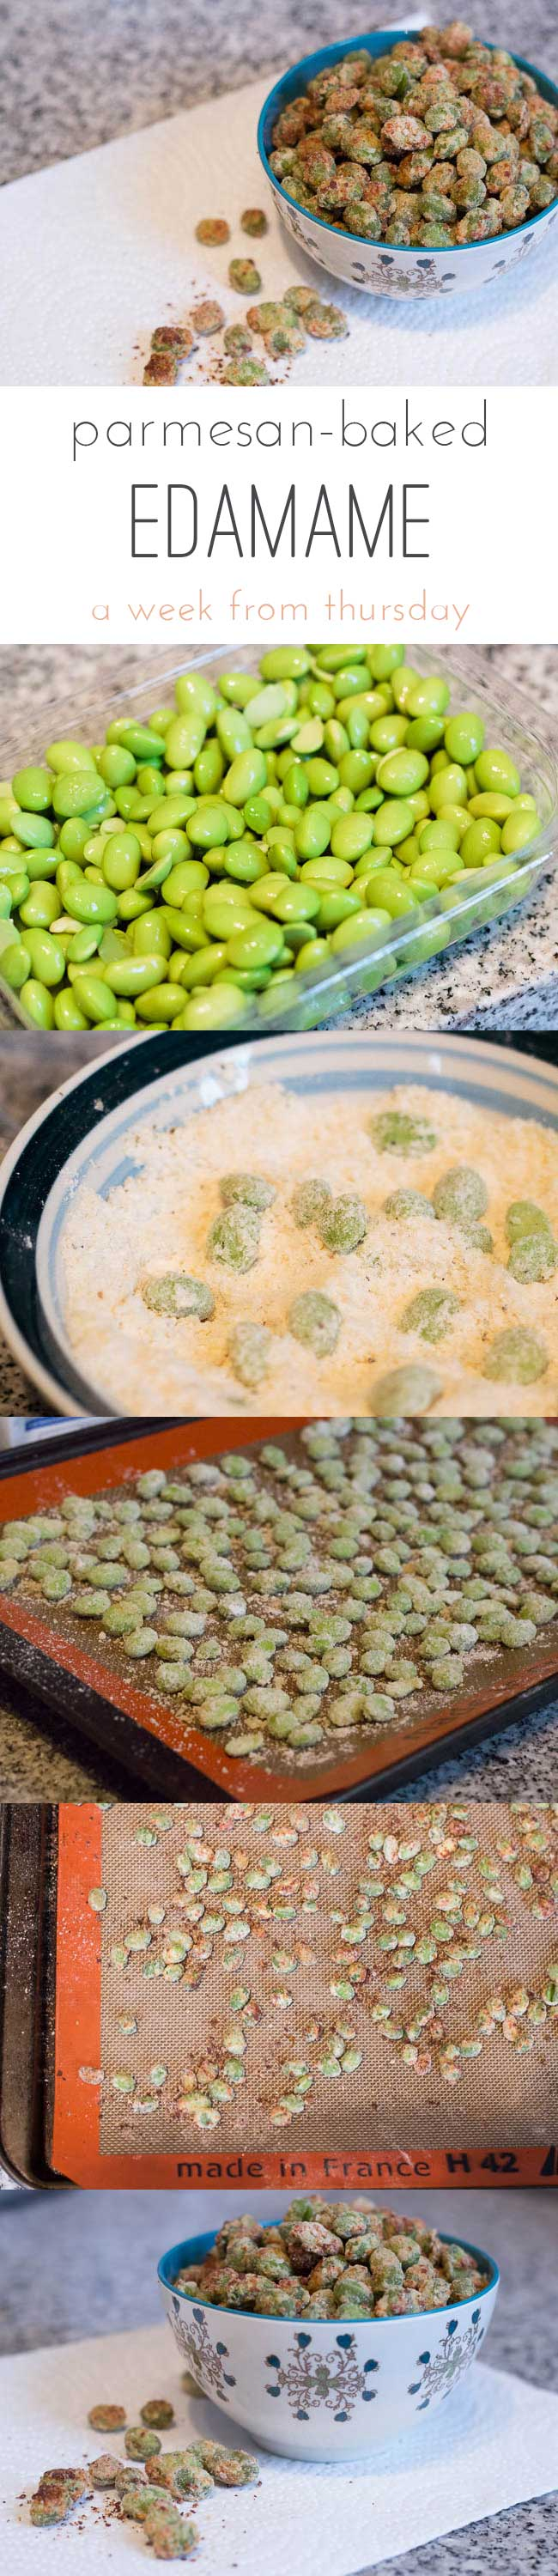 Parmesan-baked edamame, a high-protein snack! - A Week From Thursday